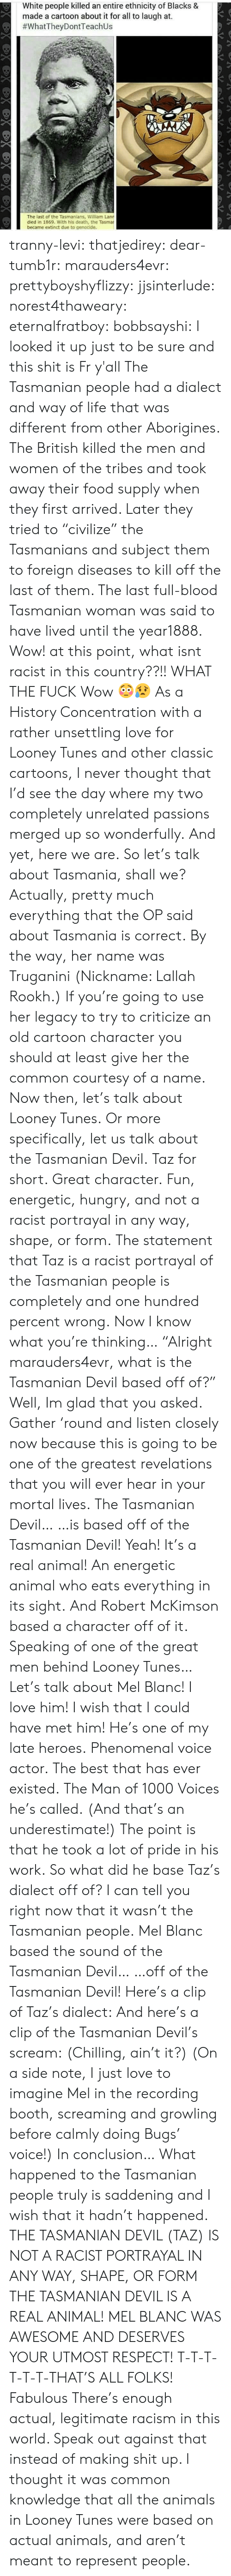 """passions: White people killed an entire ethnicity of Blacks &  made a cartoon about it for all to laugh at.  #whatTheyDontTeach Us  The last of the Tasmanians, William Lanr  died in 1869. With his death, the Tasma  became extinct due to genocide. tranny-levi:  thatjedirey:   dear-tumb1r:  marauders4evr:  prettyboyshyflizzy:  jjsinterlude:  norest4thaweary:  eternalfratboy:  bobbsayshi:  I looked it up just to be sure and this shit is Fr y'all The Tasmanian people had a dialect and way of life that was different from other Aborigines. The British killed the men and women of the tribes and took away their food supply when they first arrived. Later they tried to """"civilize"""" the Tasmanians and subject them to foreign diseases to kill off the last of them. The last full-blood Tasmanian woman was said to have lived until the year1888.  Wow!  at this point, what isnt racist in this country??!!  WHAT THE FUCK  Wow 😳😥   As a History Concentration with a rather unsettling love for Looney Tunes and other classic cartoons, I never thought that I'd see the day where my two completely unrelated passions merged up so wonderfully. And yet, here we are. So let's talk about Tasmania, shall we? Actually, pretty much everything that the OP said about Tasmania is correct. By the way, her name was Truganini (Nickname:   Lallah Rookh.)If you're going to use her legacy to try to criticize an old cartoon character you should at least give her the common courtesy of a name. Now then, let's talk about Looney Tunes. Or more specifically, let us talk about the Tasmanian Devil. Taz for short. Great character. Fun, energetic, hungry, and not a racist portrayal in any way, shape, or form. The statement that Taz is a racist portrayal of the Tasmanian people is completely and one hundred percent wrong. Now I know what you're thinking… """"Alright marauders4evr, what is the Tasmanian Devil based off of?"""" Well, Im glad that you asked. Gather'round and listen closely now because this is going to be one of """